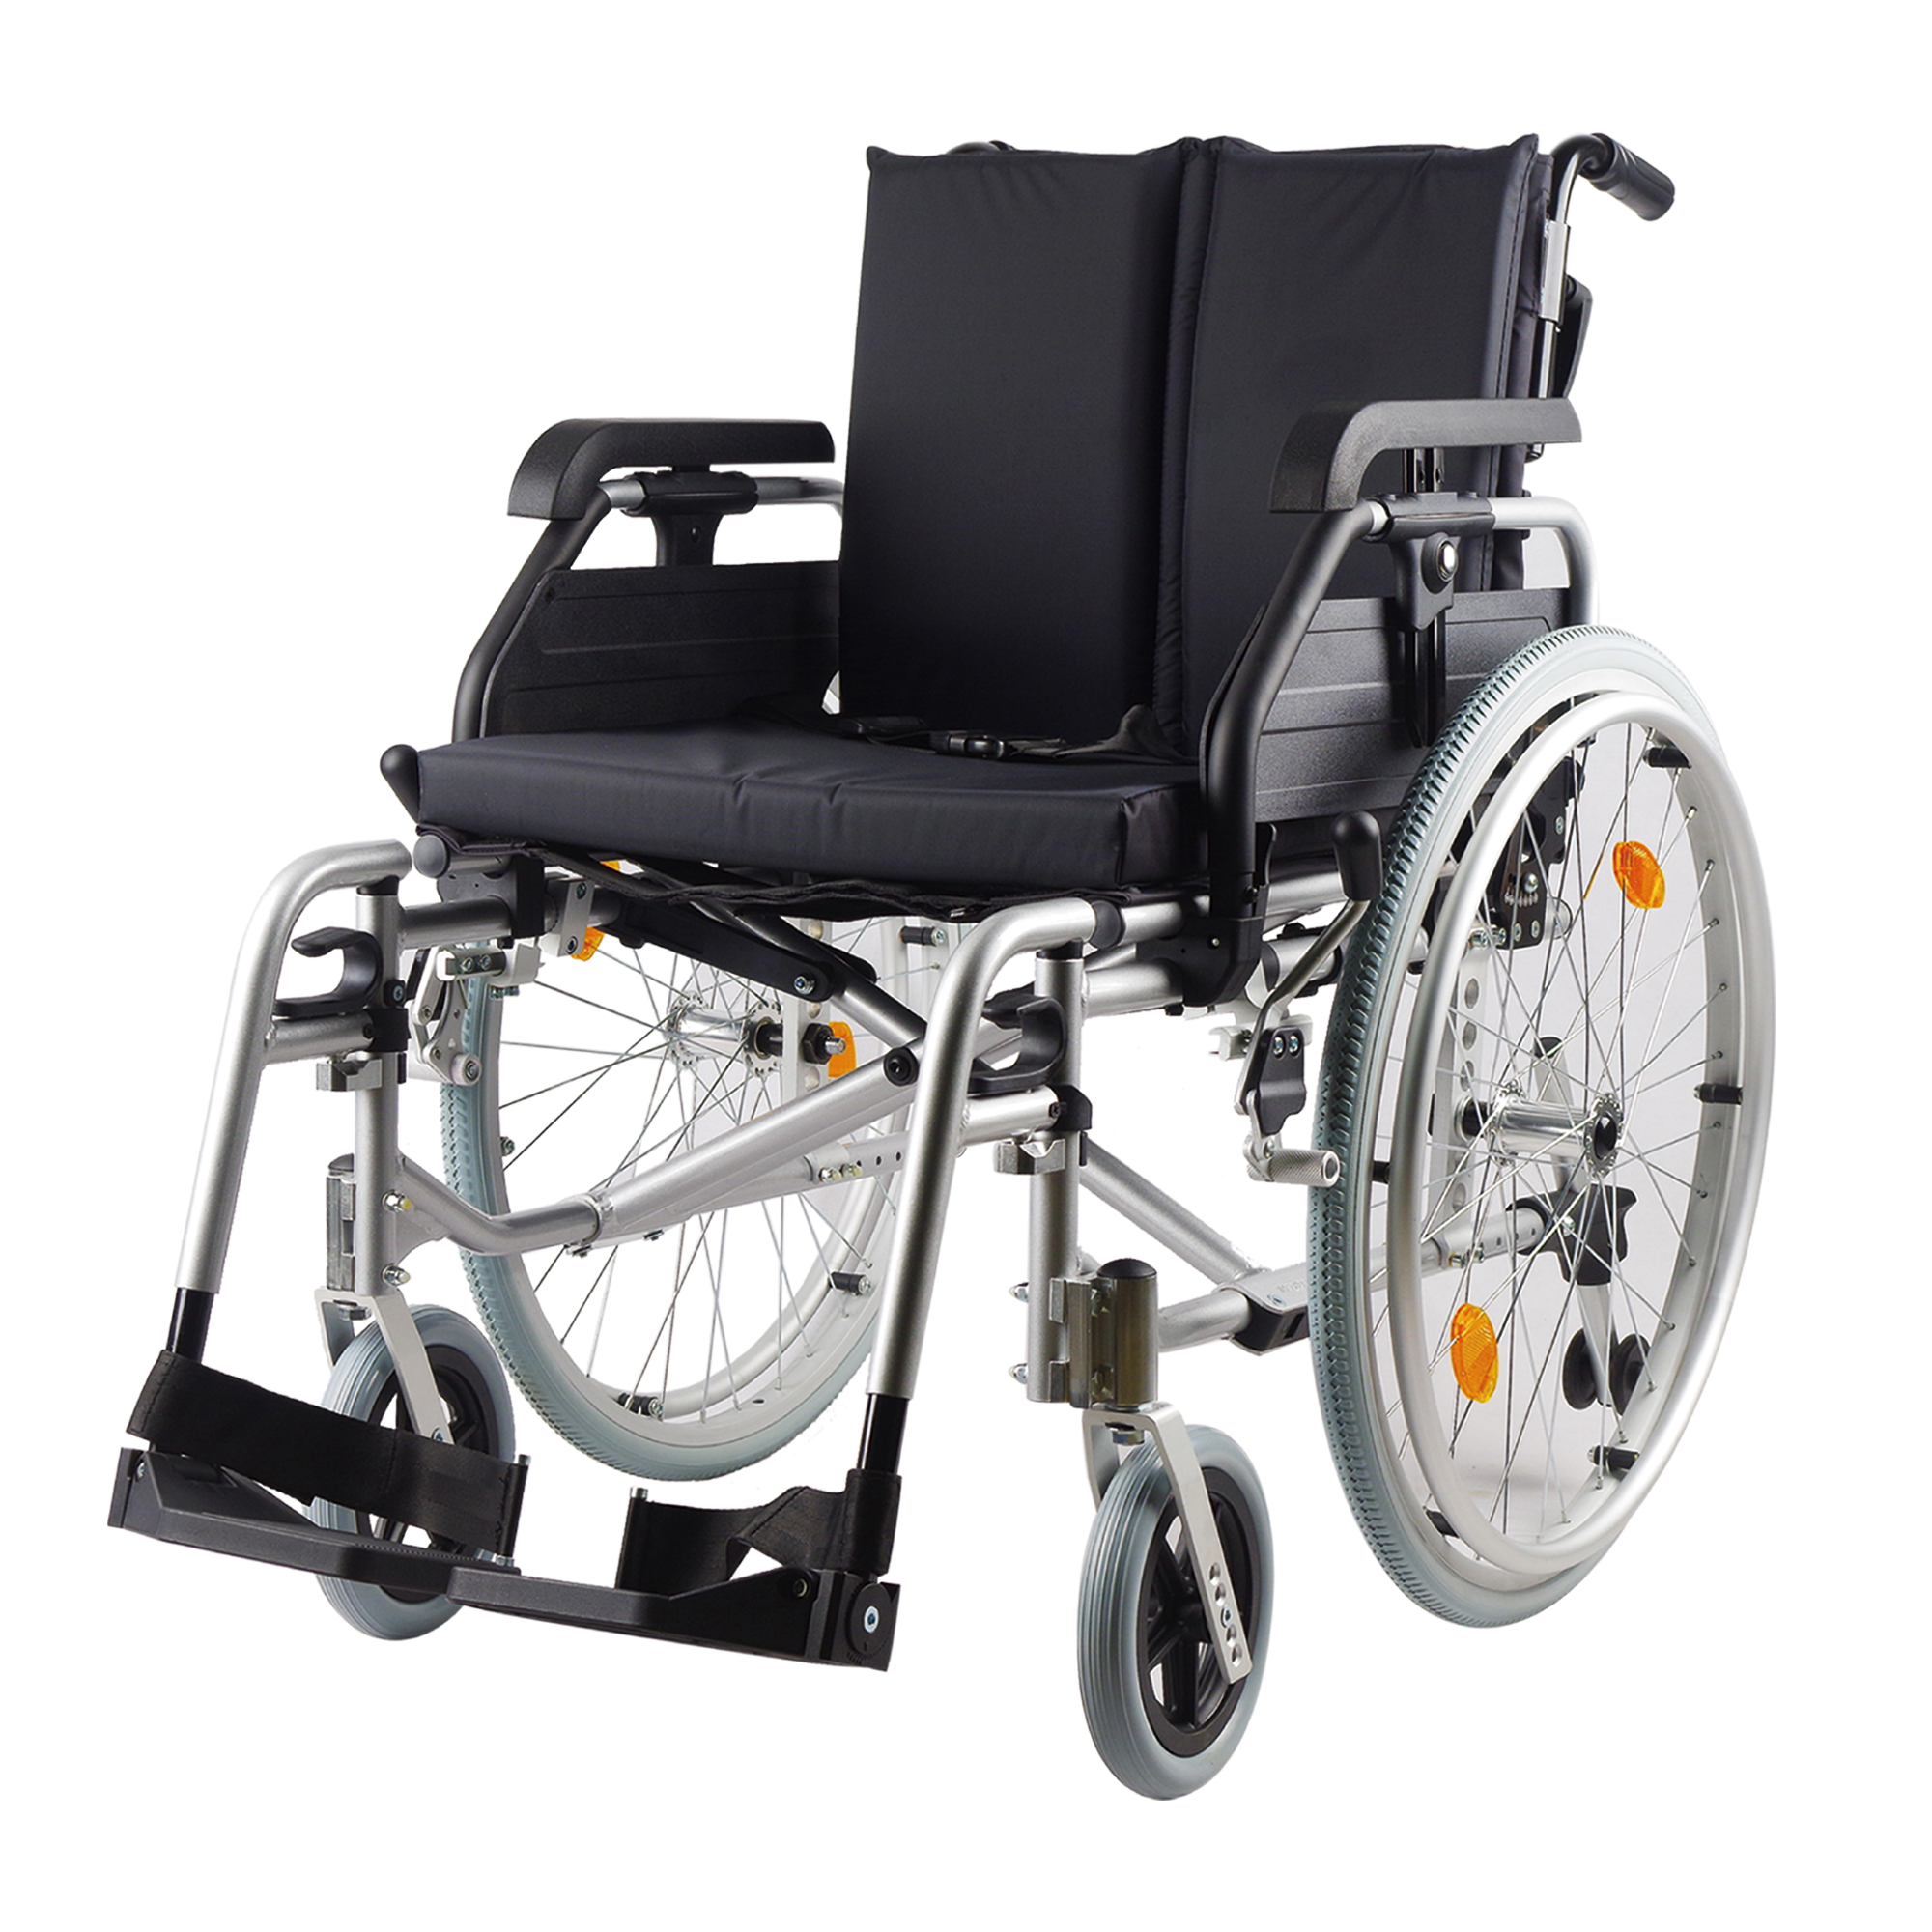 How to Choose A Suitable Wheelchairs?